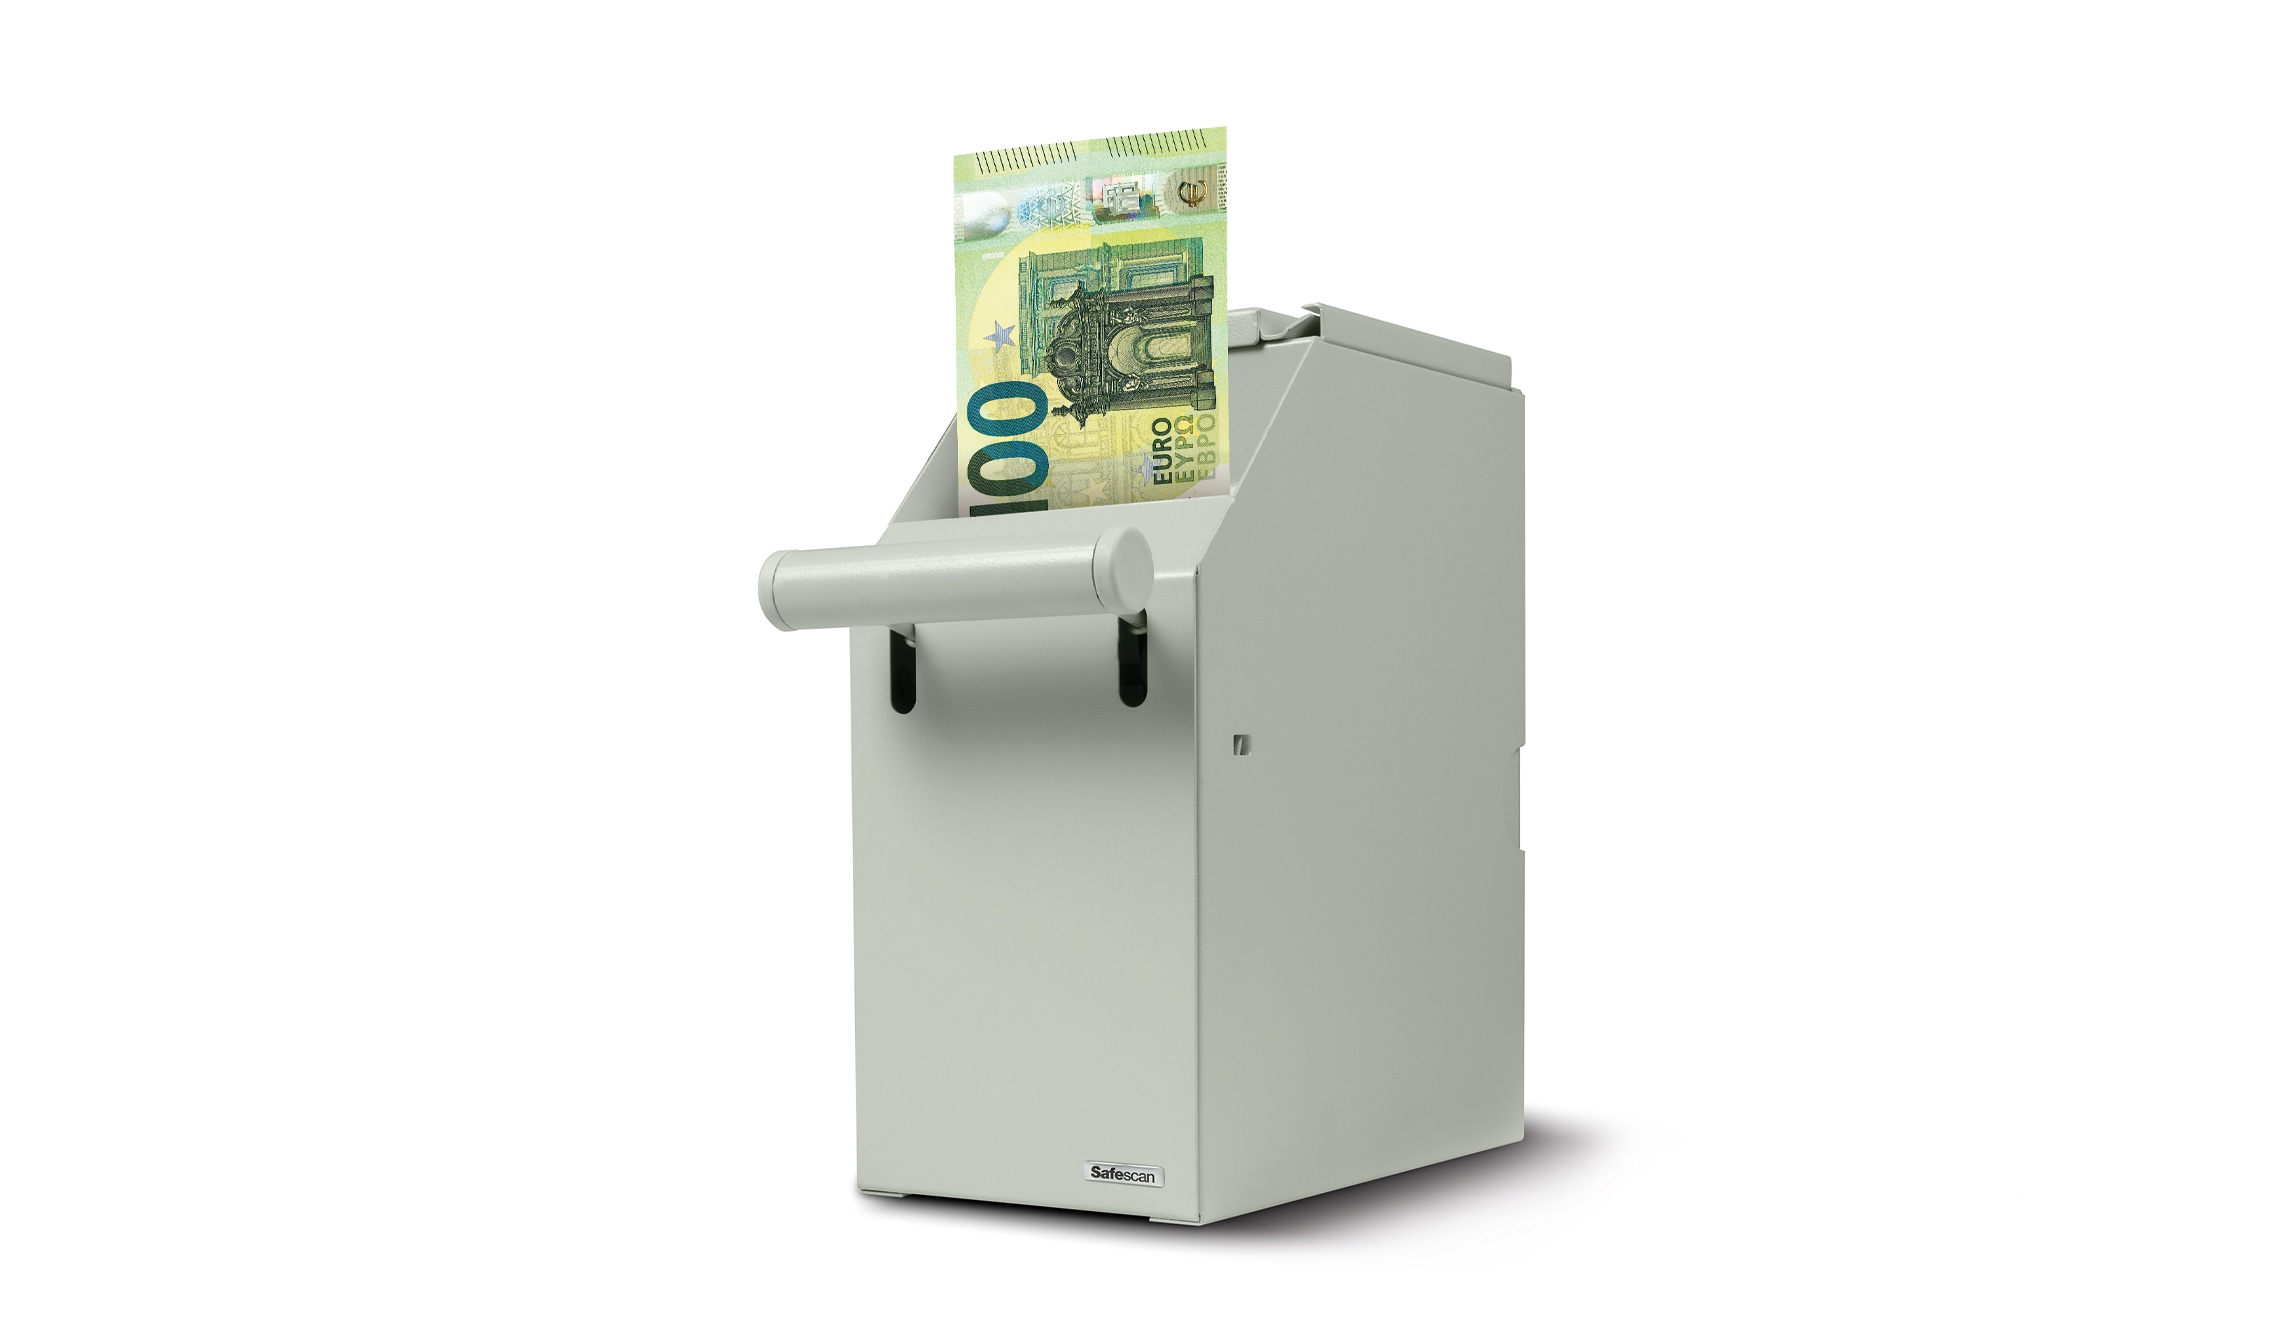 safescan-4100w-coffre-fort-pos